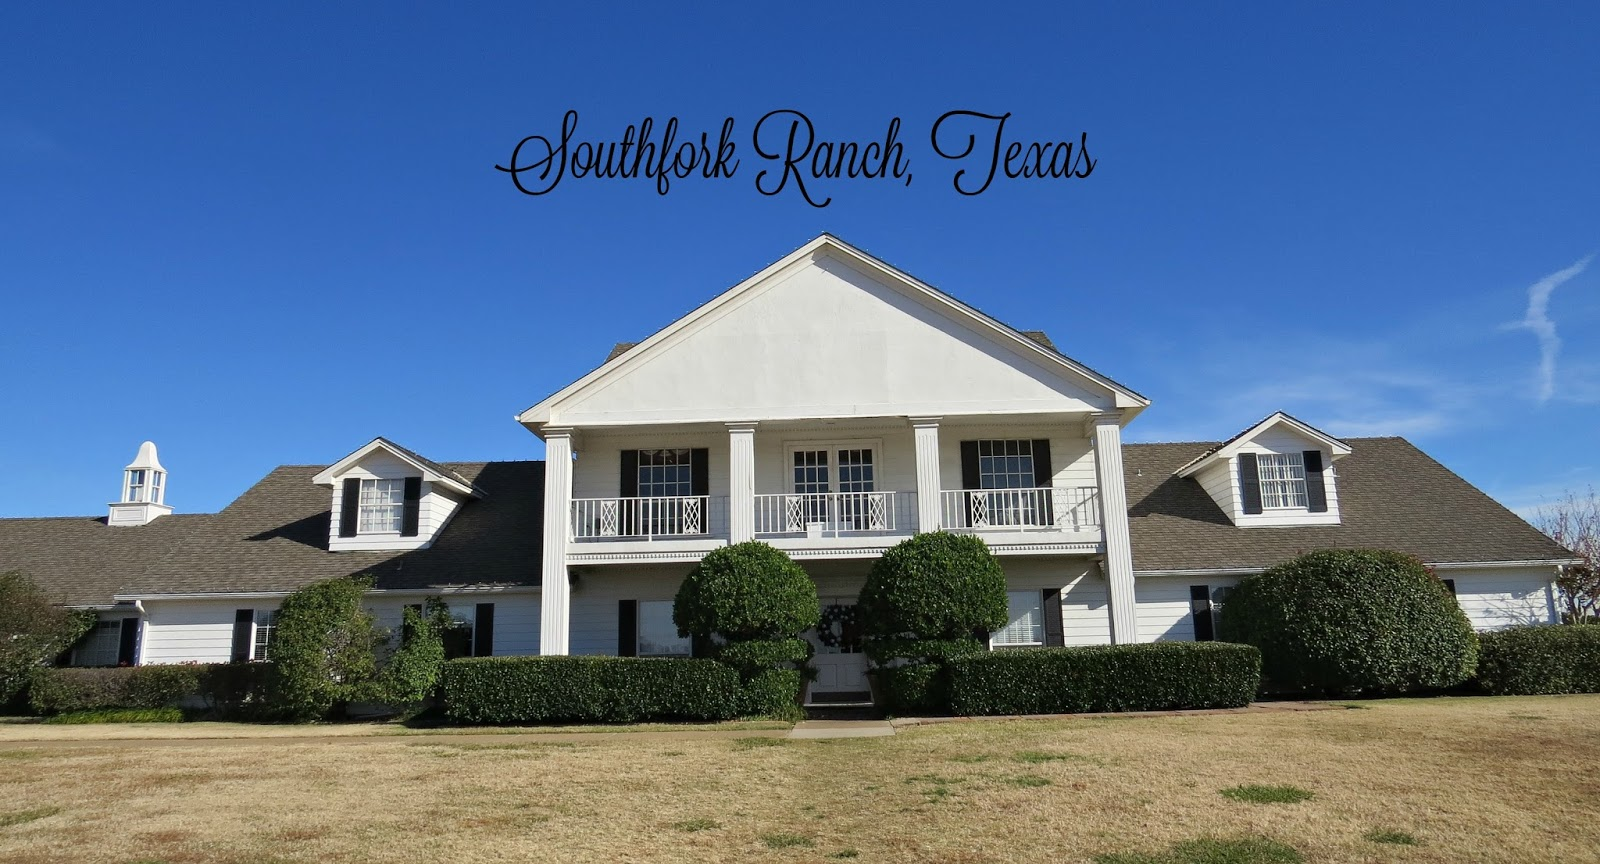 The lavender bouquet christmas tour at southfork ranch for Home pictures